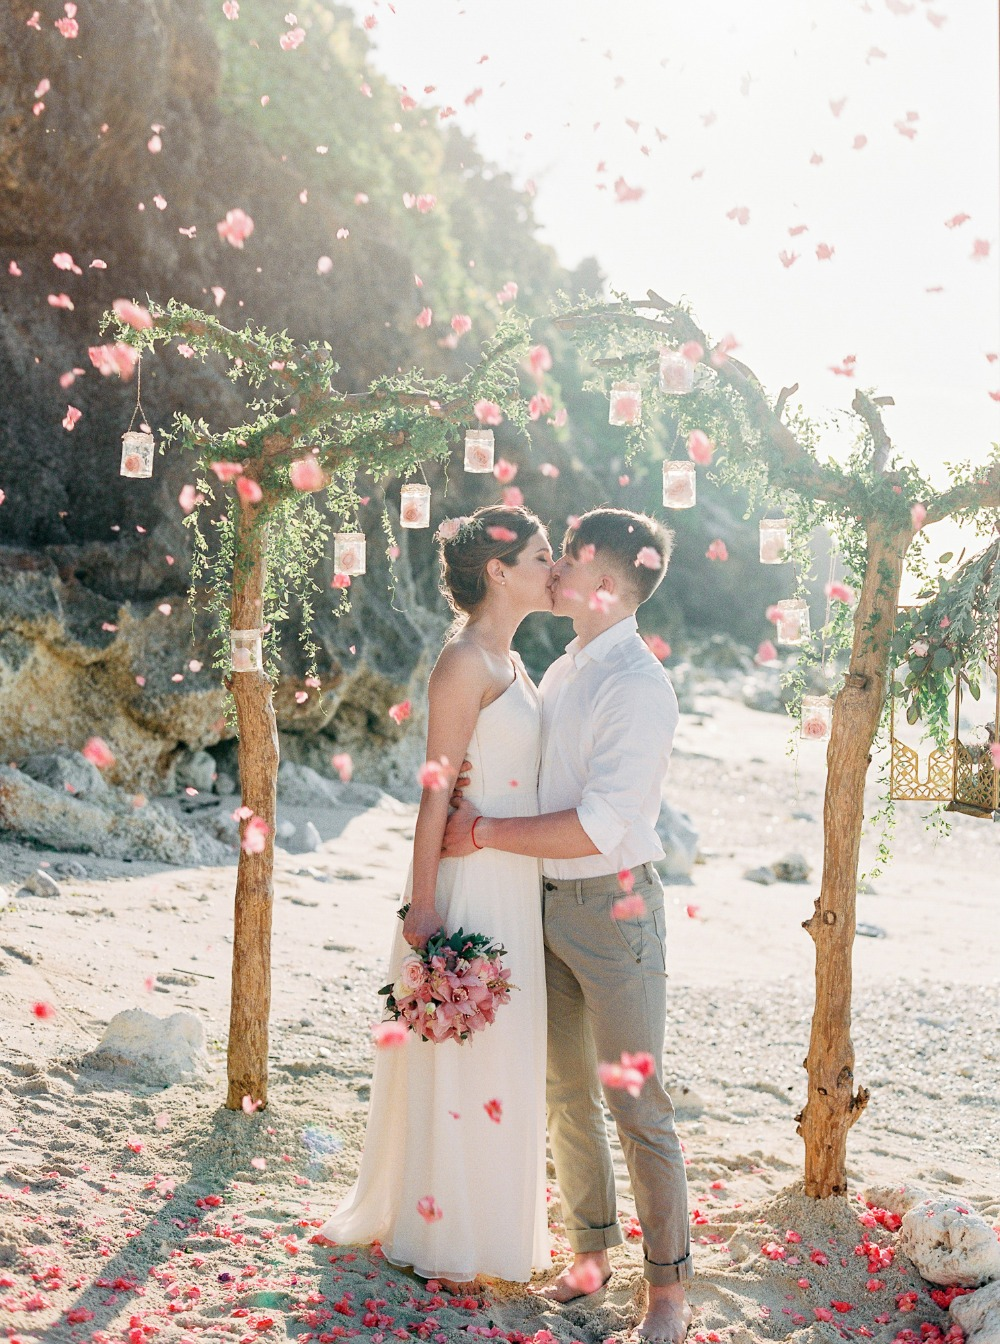 Today's Forecast: Heavy Flower Petal Showers On The Beaches Of Bali